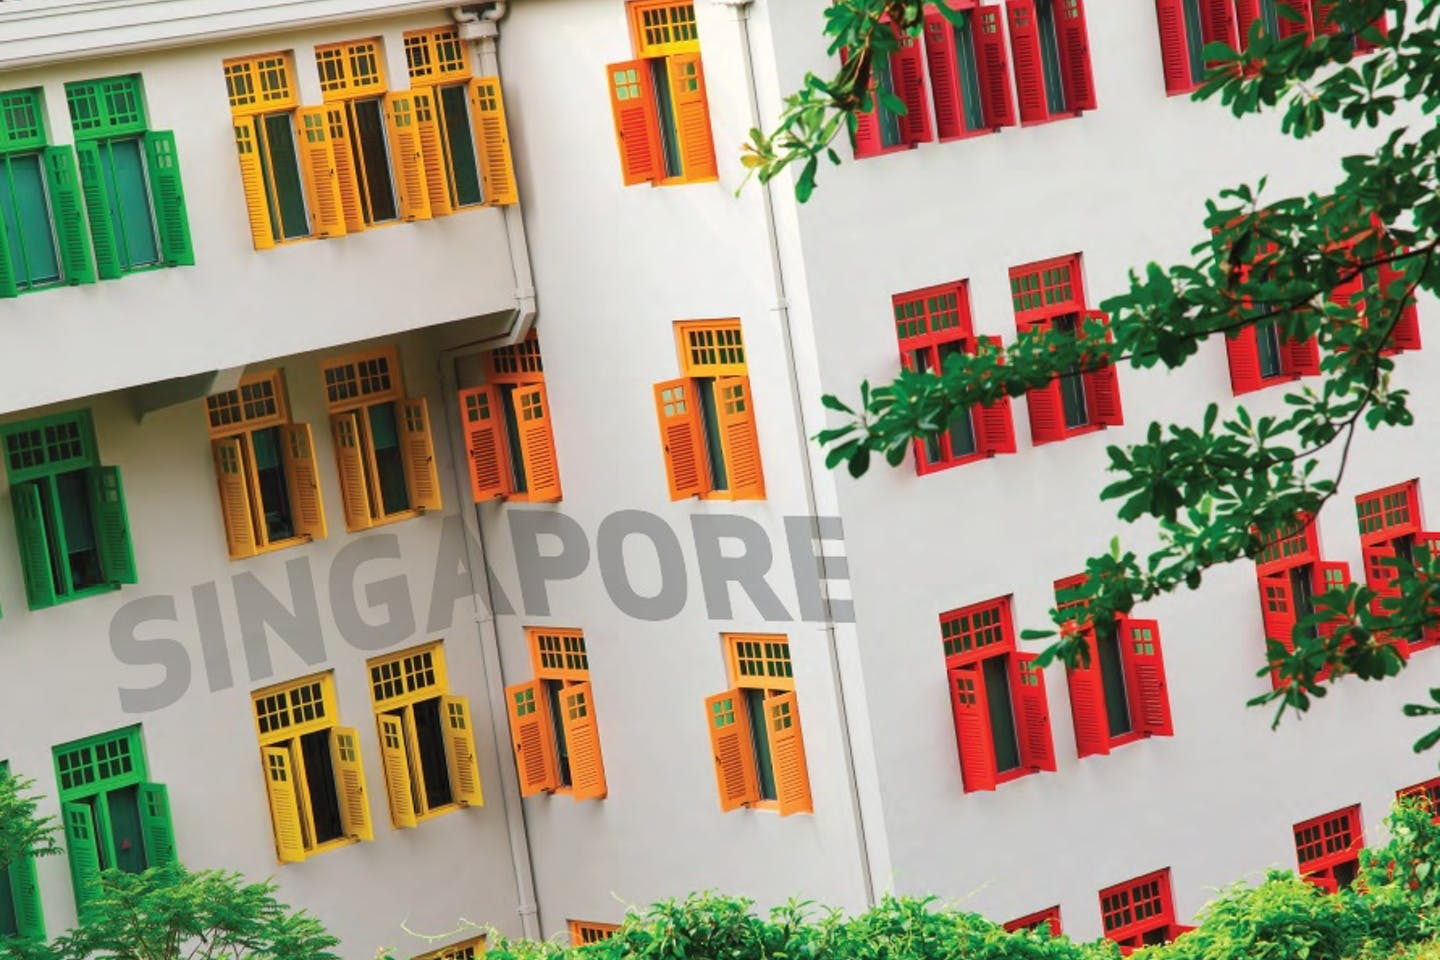 spore bldg windows